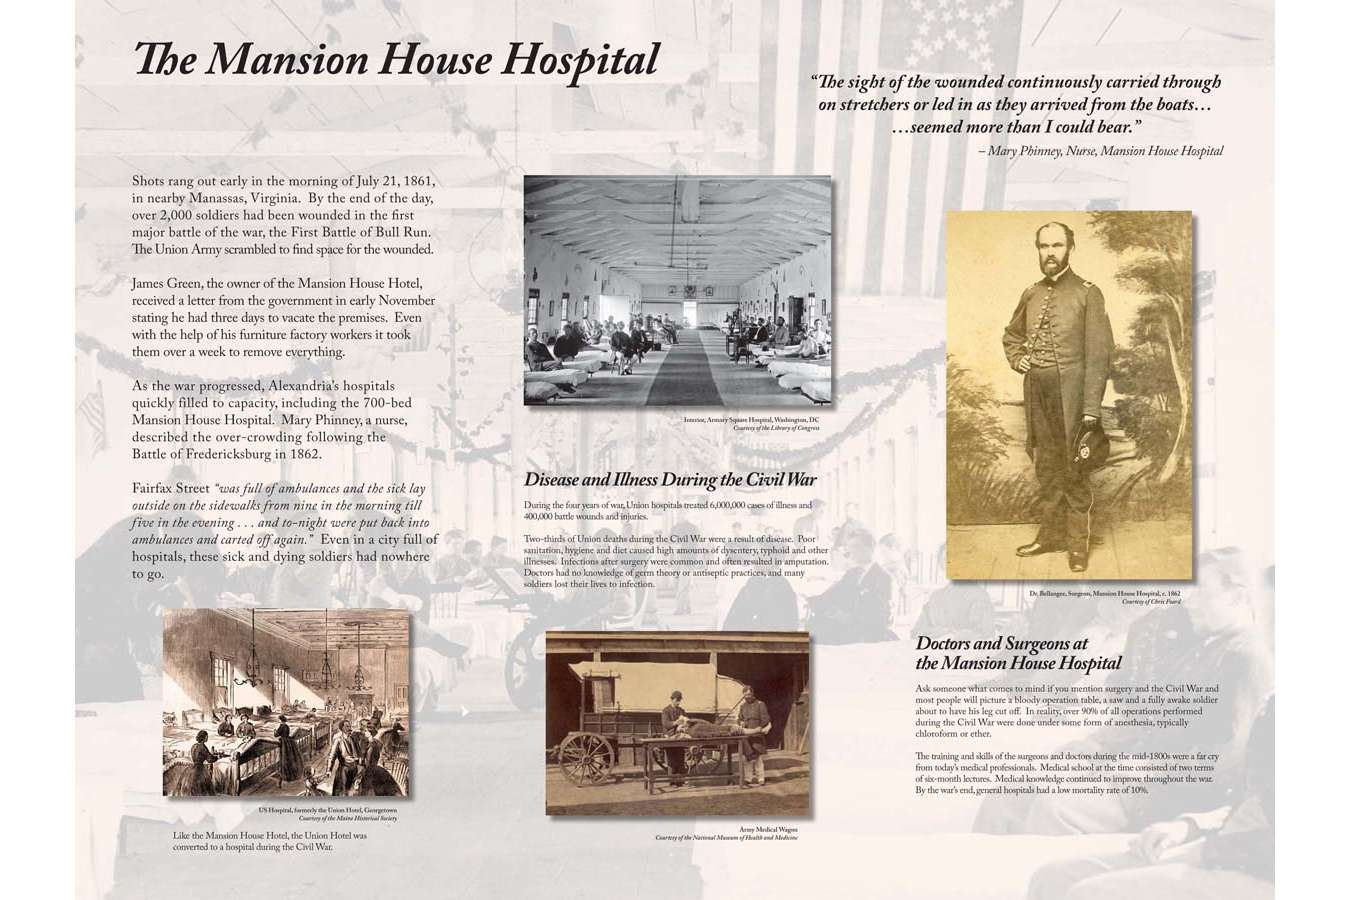 CARLY 3n : Mansion House Hotel was twice commandeered as a hospital for Union soldiers